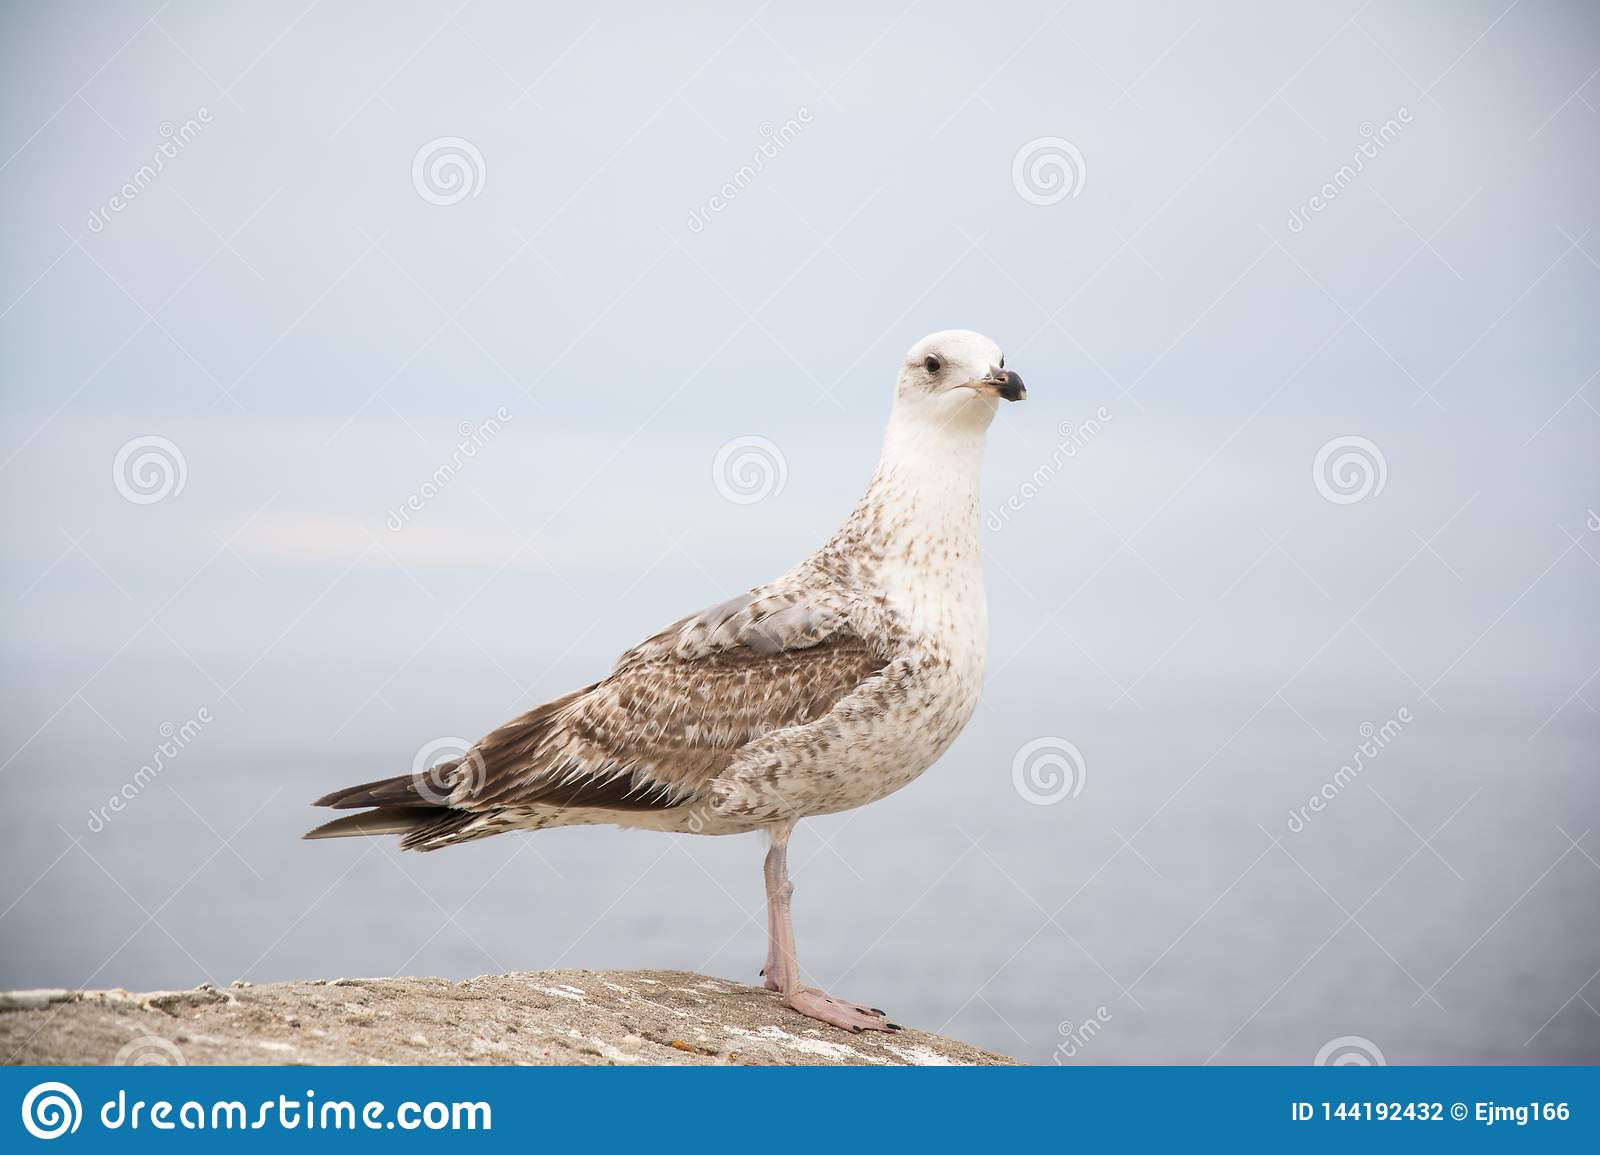 Young seagull in a rock